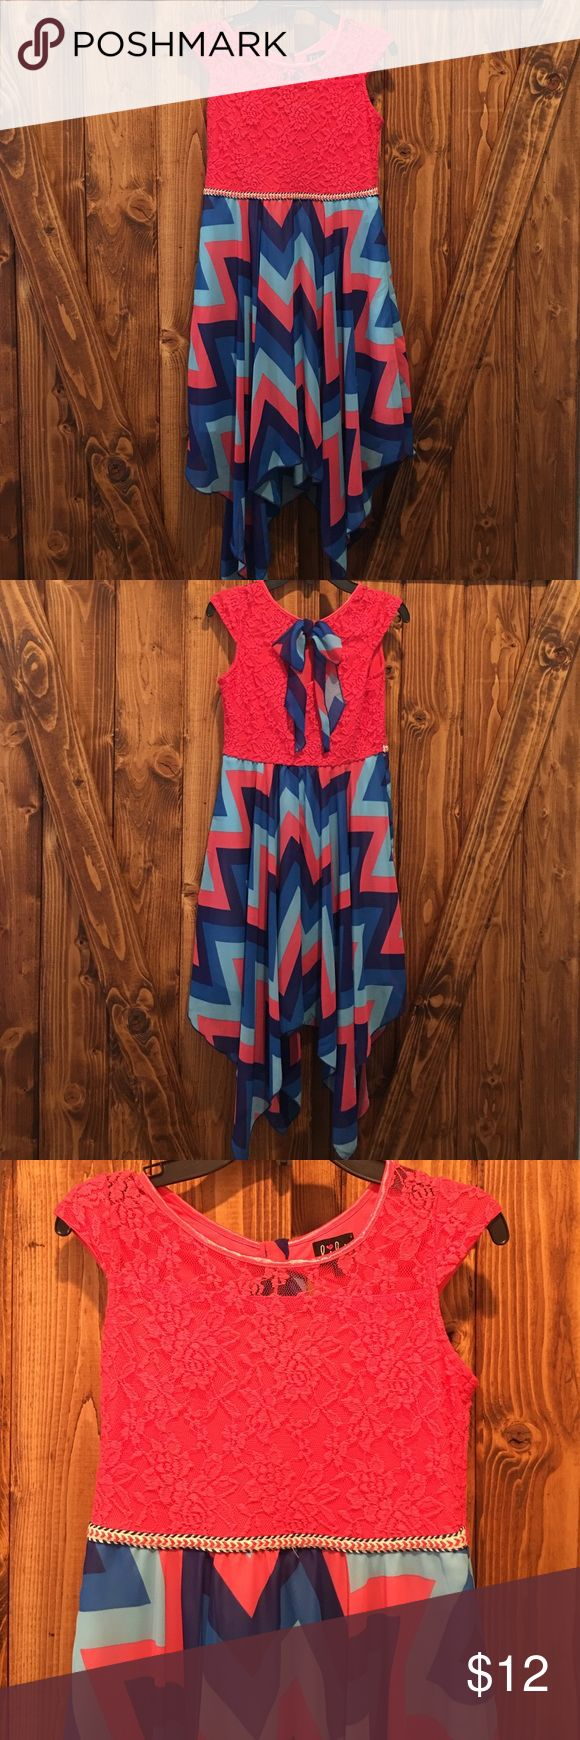 Lace & Chevron Dress This dress is gently used, in excellent condition! Beautiful shade of pink lace on top. Pink and 2 shades of blue chevron pattern on bottom. Slip underneath. Back has cute detail! Dresses